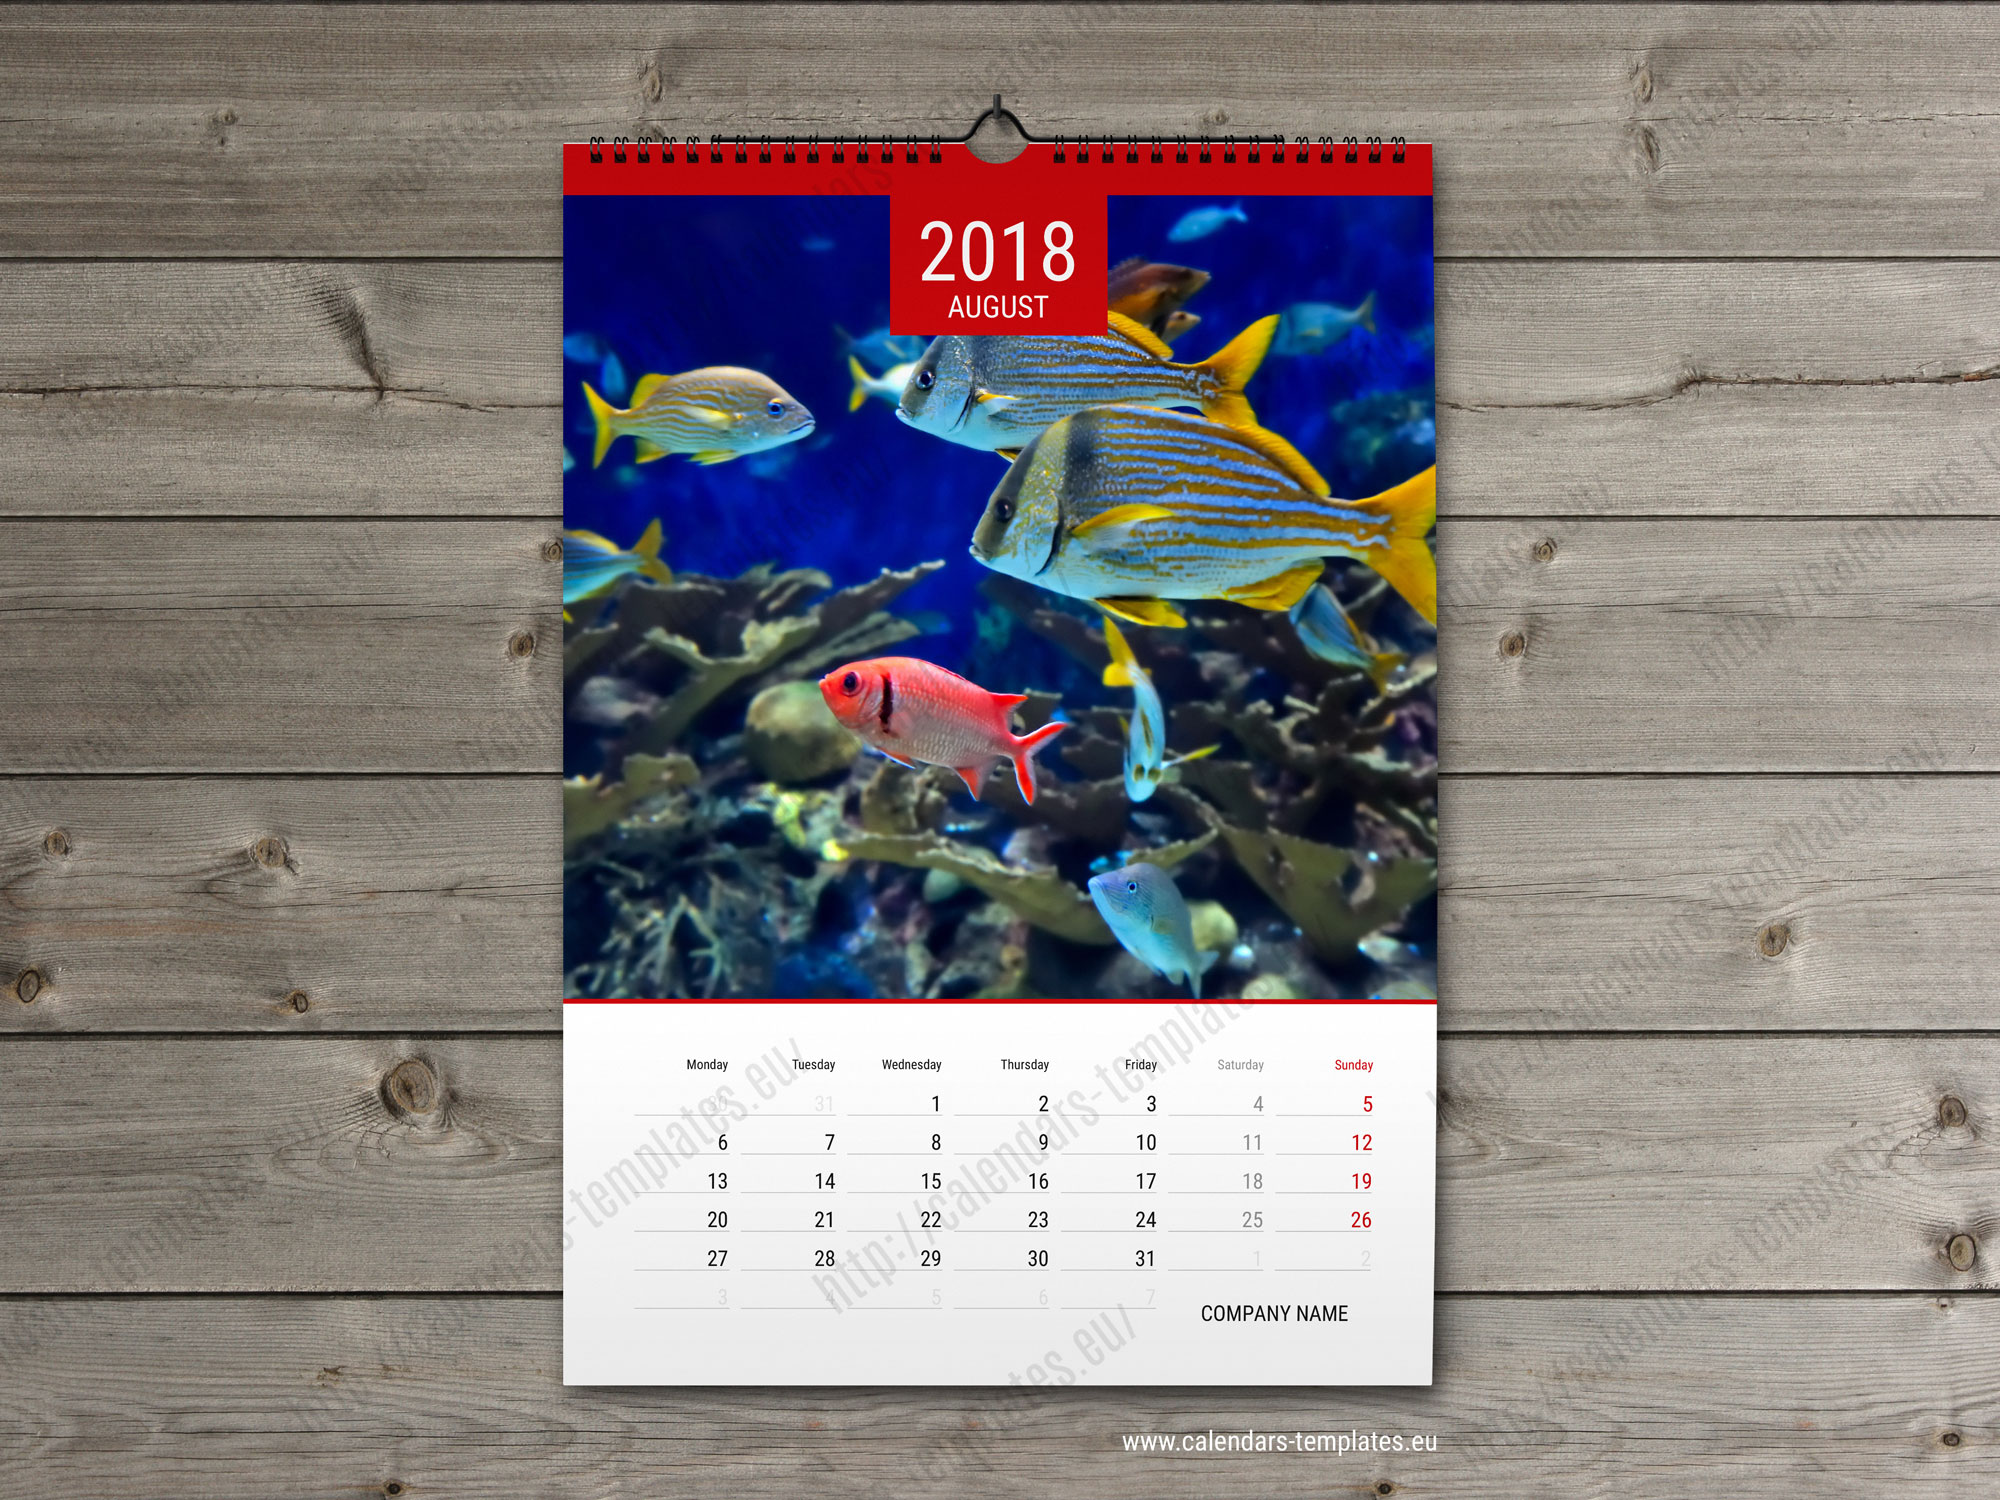 Calendar 2018. Printable custom yearly photo calendar